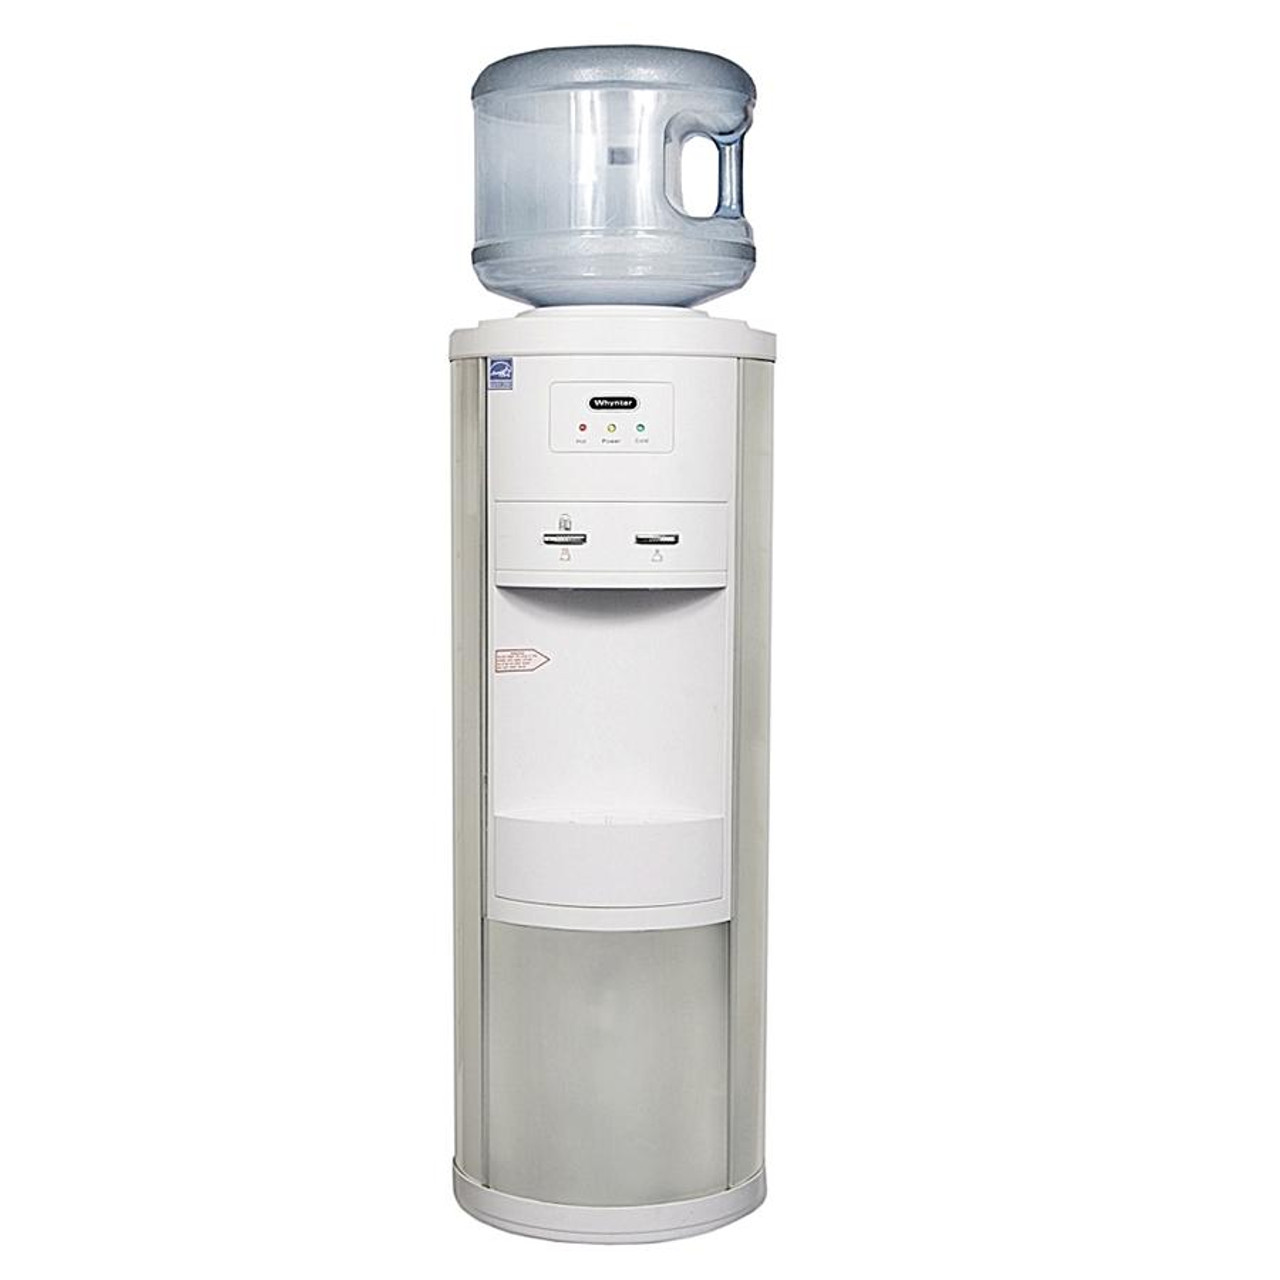 6170 2 each Hot Shot-Hot Water Dispenser